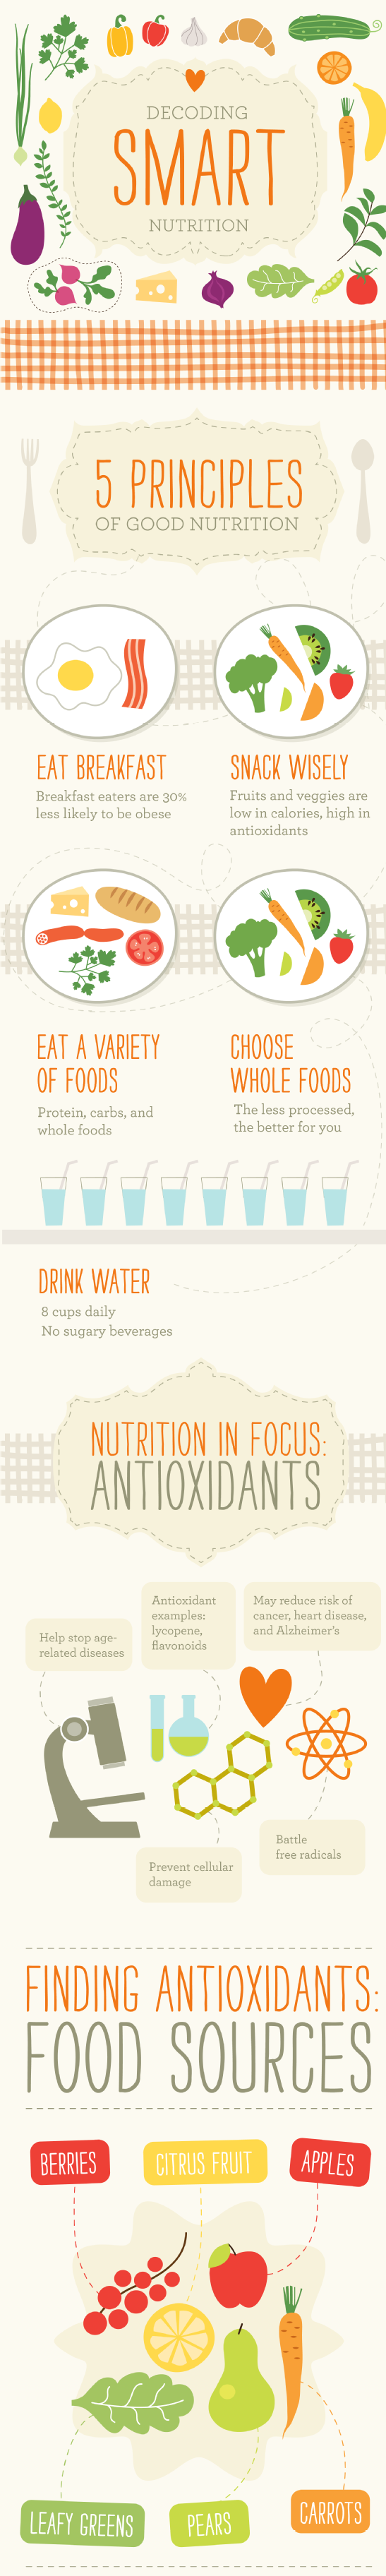 image via http://visual.ly/decoding-smart-nutrition